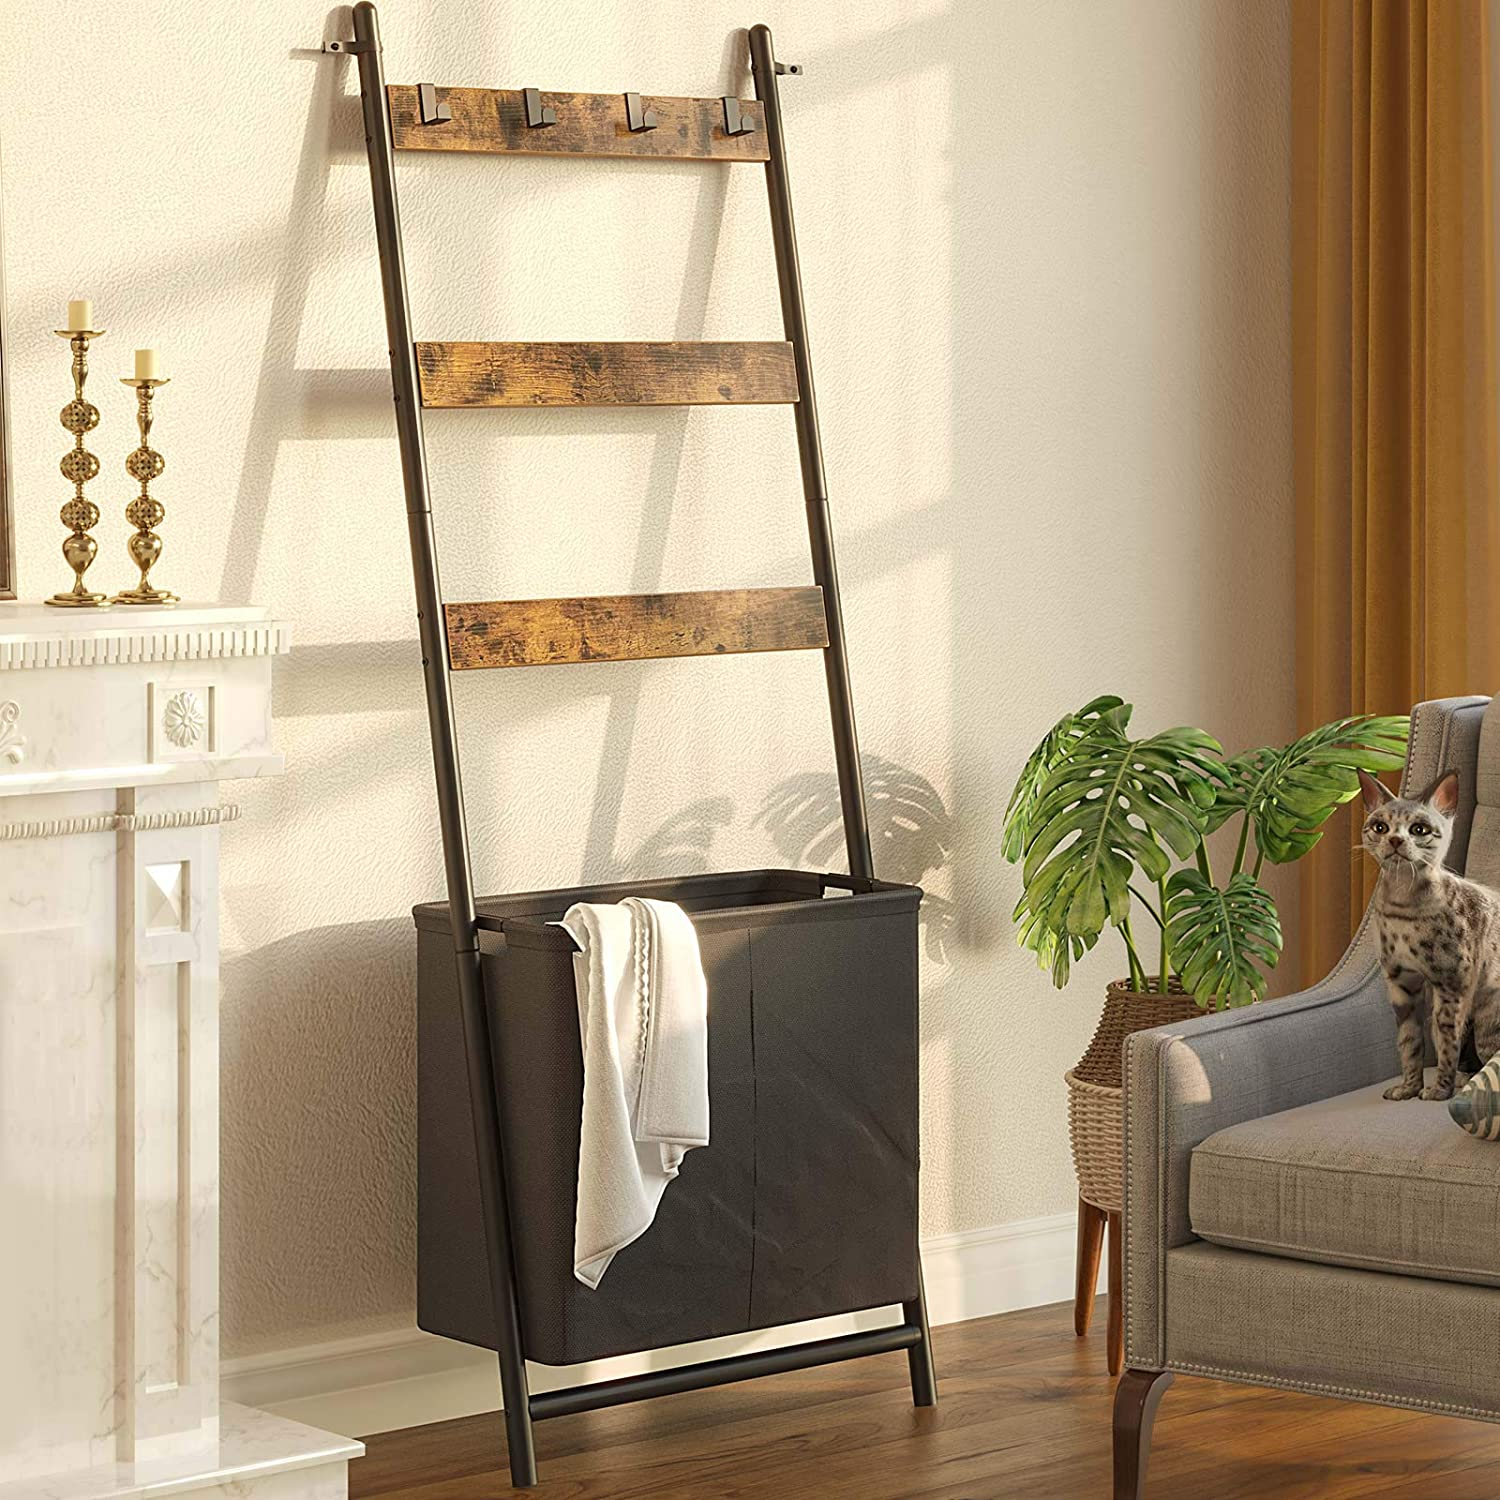 Rolanstar Ladder Shelf for Blanket, Wall-Leaning Blanket Rack with a Storage Basket and 4 Hanging Hooks, 3-Tier Farmhouse Leaning Shelf for Bathroom, Living Room,Rustic Brown